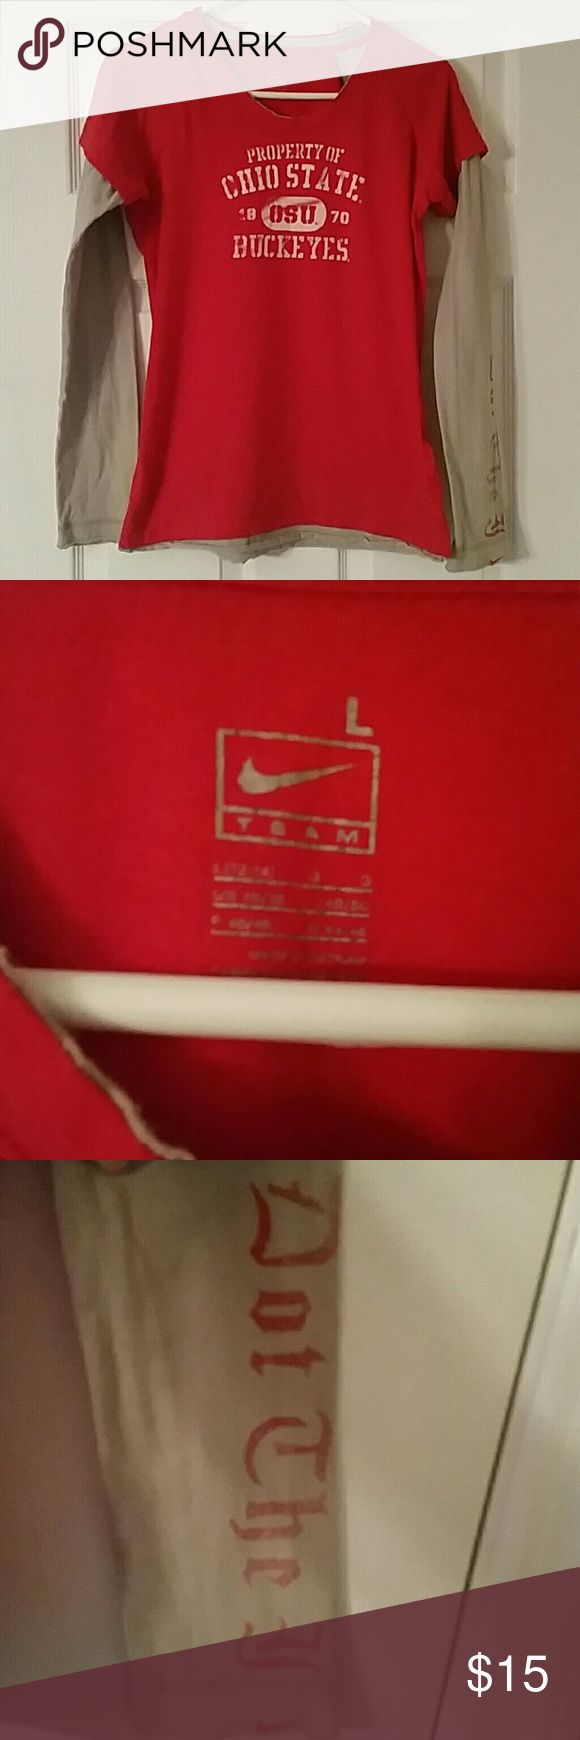 """NIKE OHIO STATE Layered Tee Nike OSU ladies/juniors long sleeve fitted t-shirt. Soooo adorable on..ive just outgrown it.  :( Has a vintage look to it and sleeves say """"Dot the I"""" SUPER CUTE. Ready for gameday..coming soon! Nike Tops Tees - Long Sleeve"""